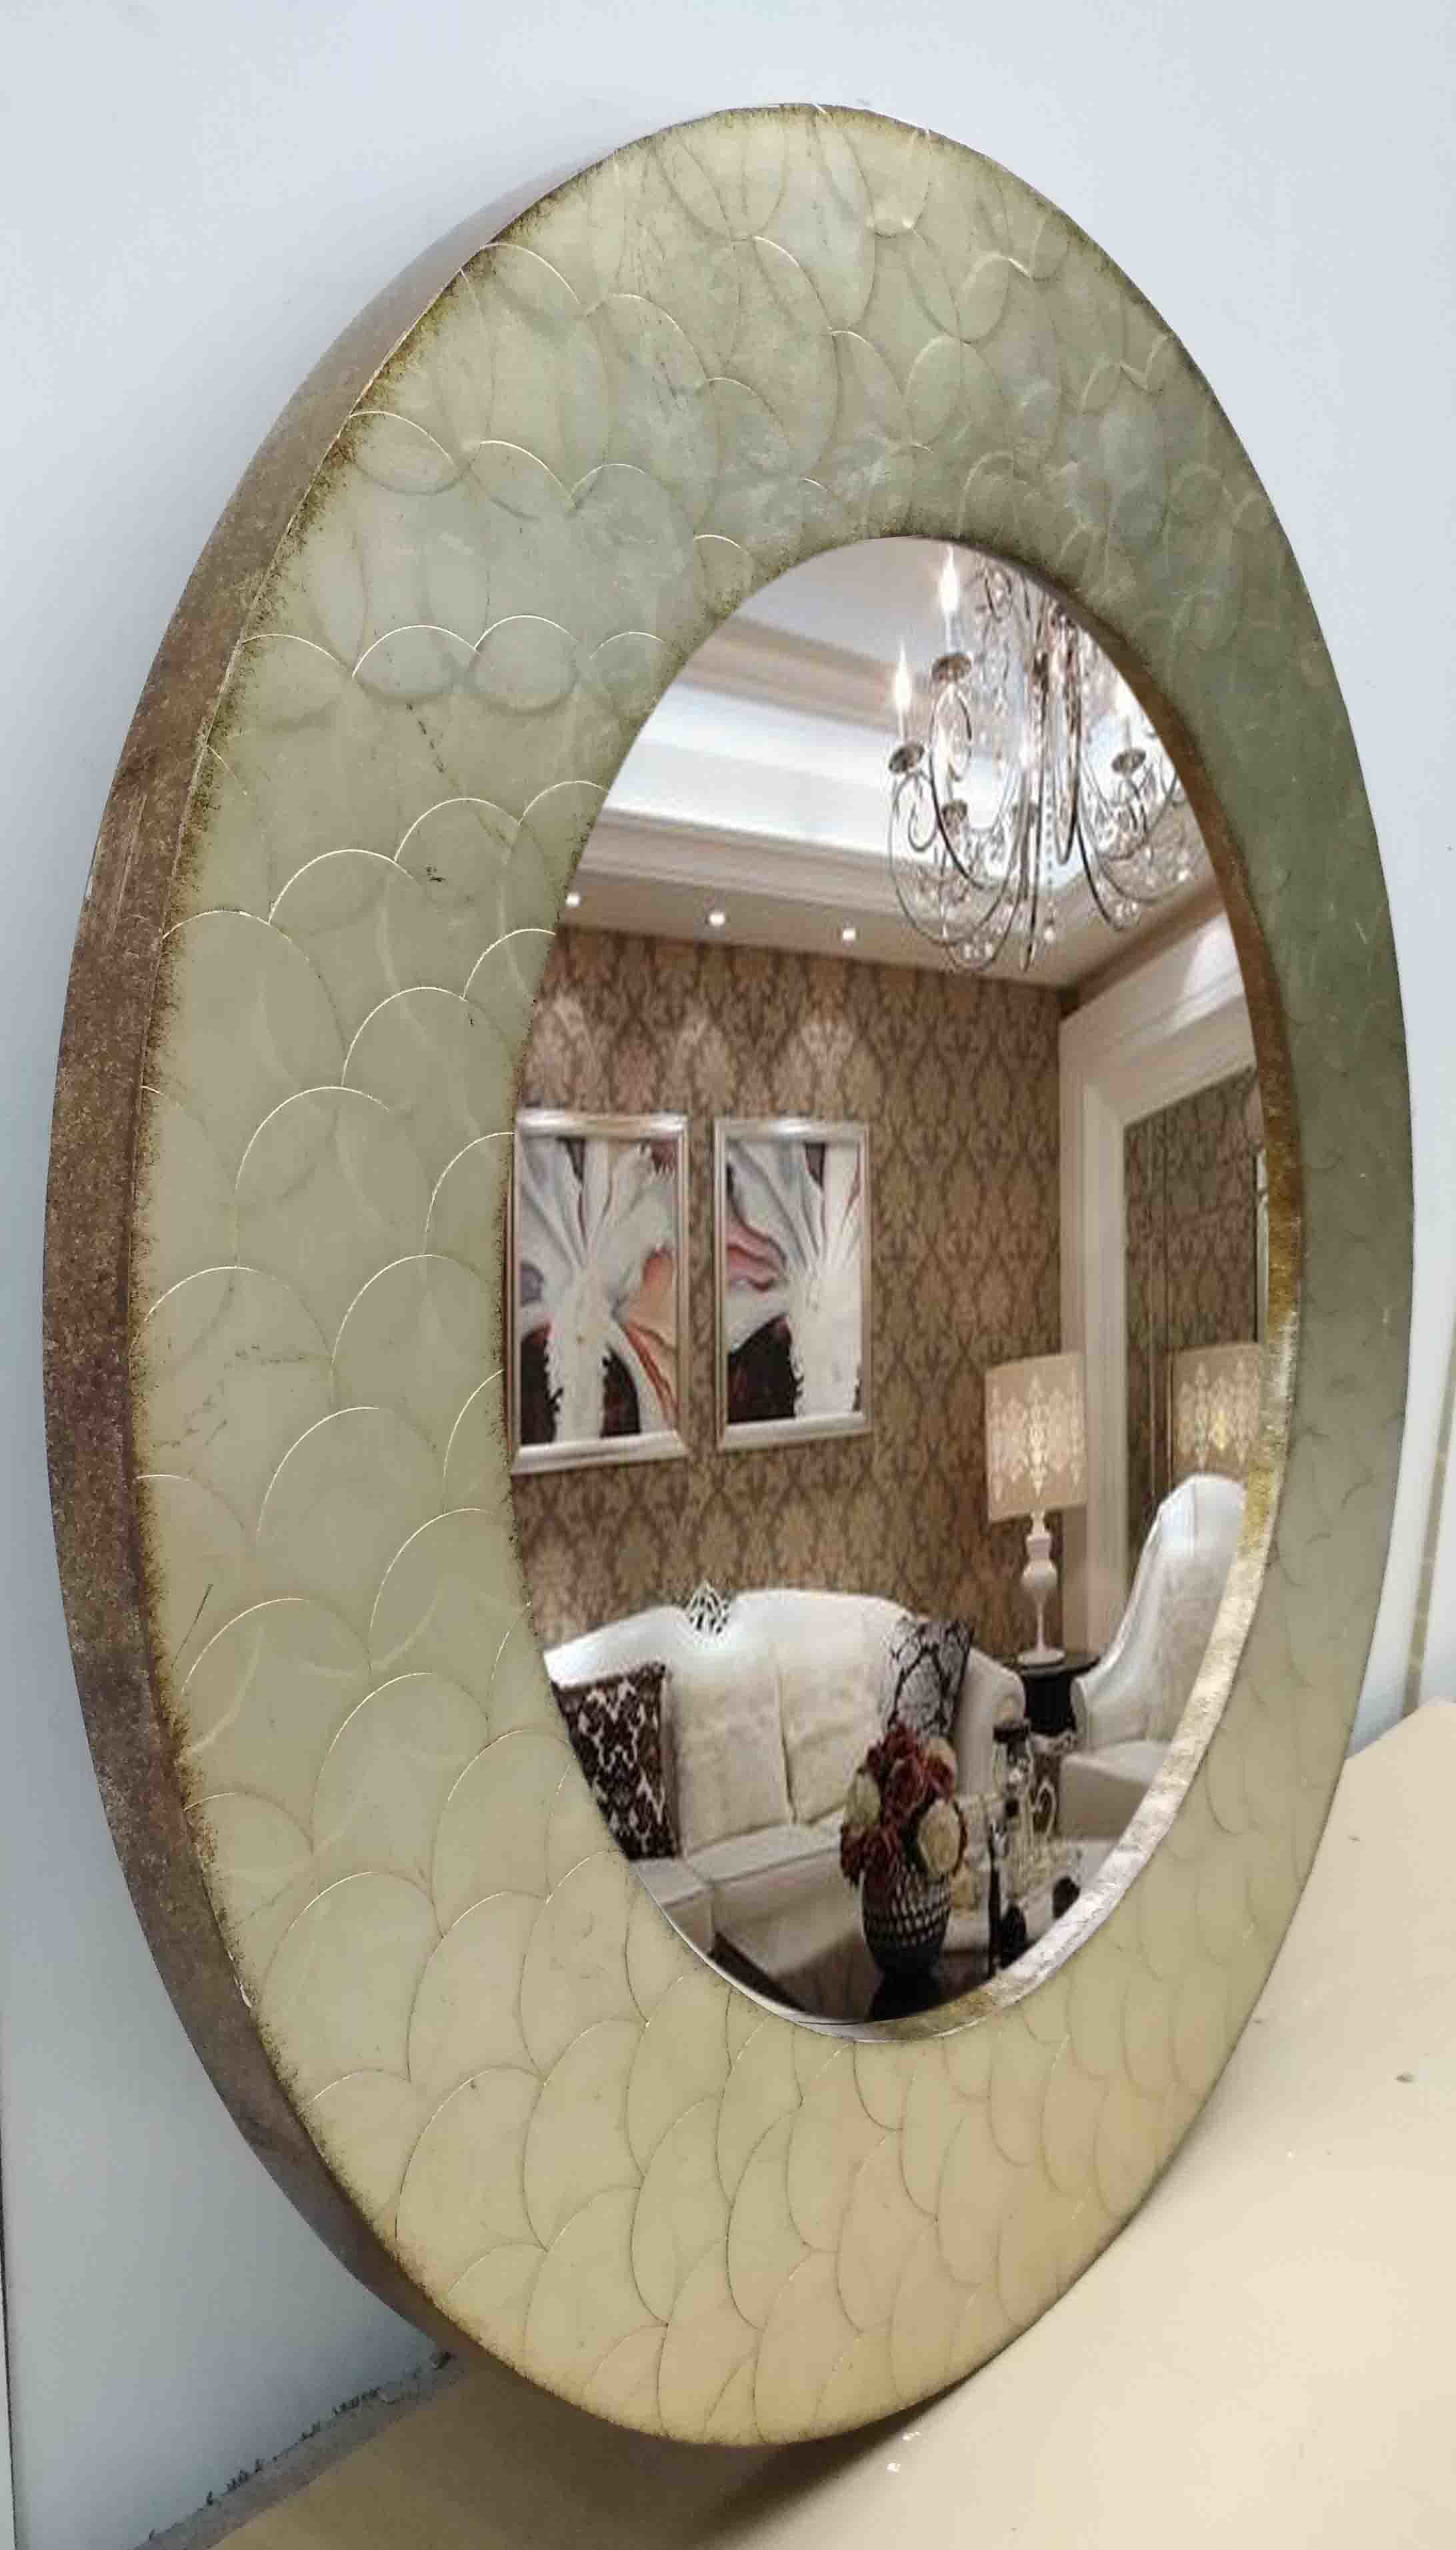 Round Handmade Leaf Mirror Wall Mirror for Home Decoration